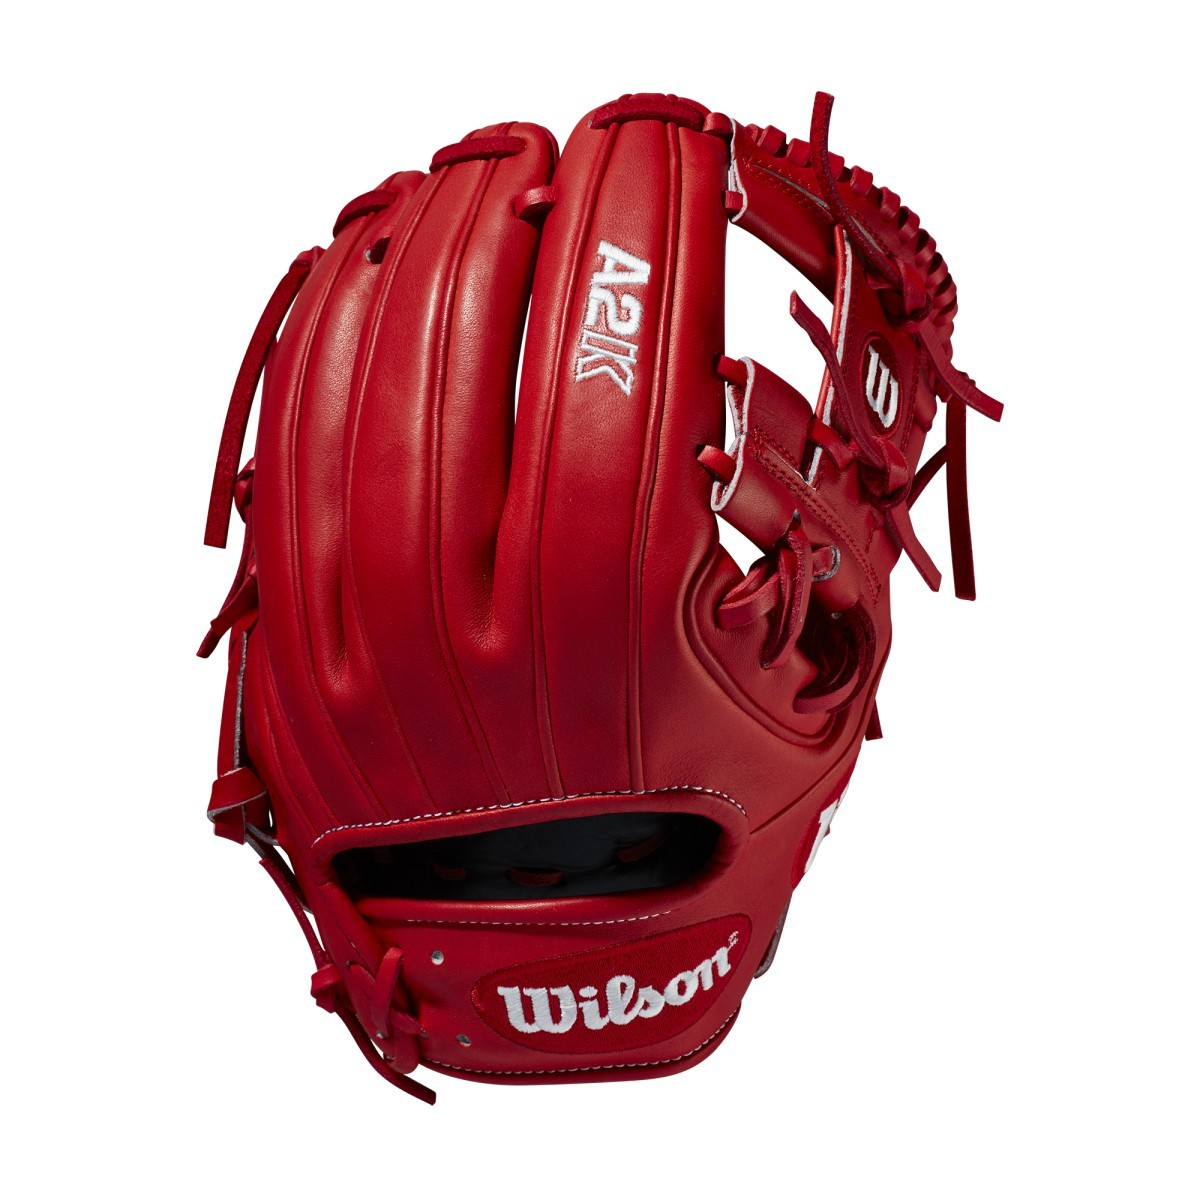 wilson-a2k-1786-ozzie-albies-baseball-glove-11-5-right-hand-throw WTA2KRB19LEJAN-RightHandThrow Wilson 887768824402 Take the style of Atlanta Braves infielder Ozzie Albies with you